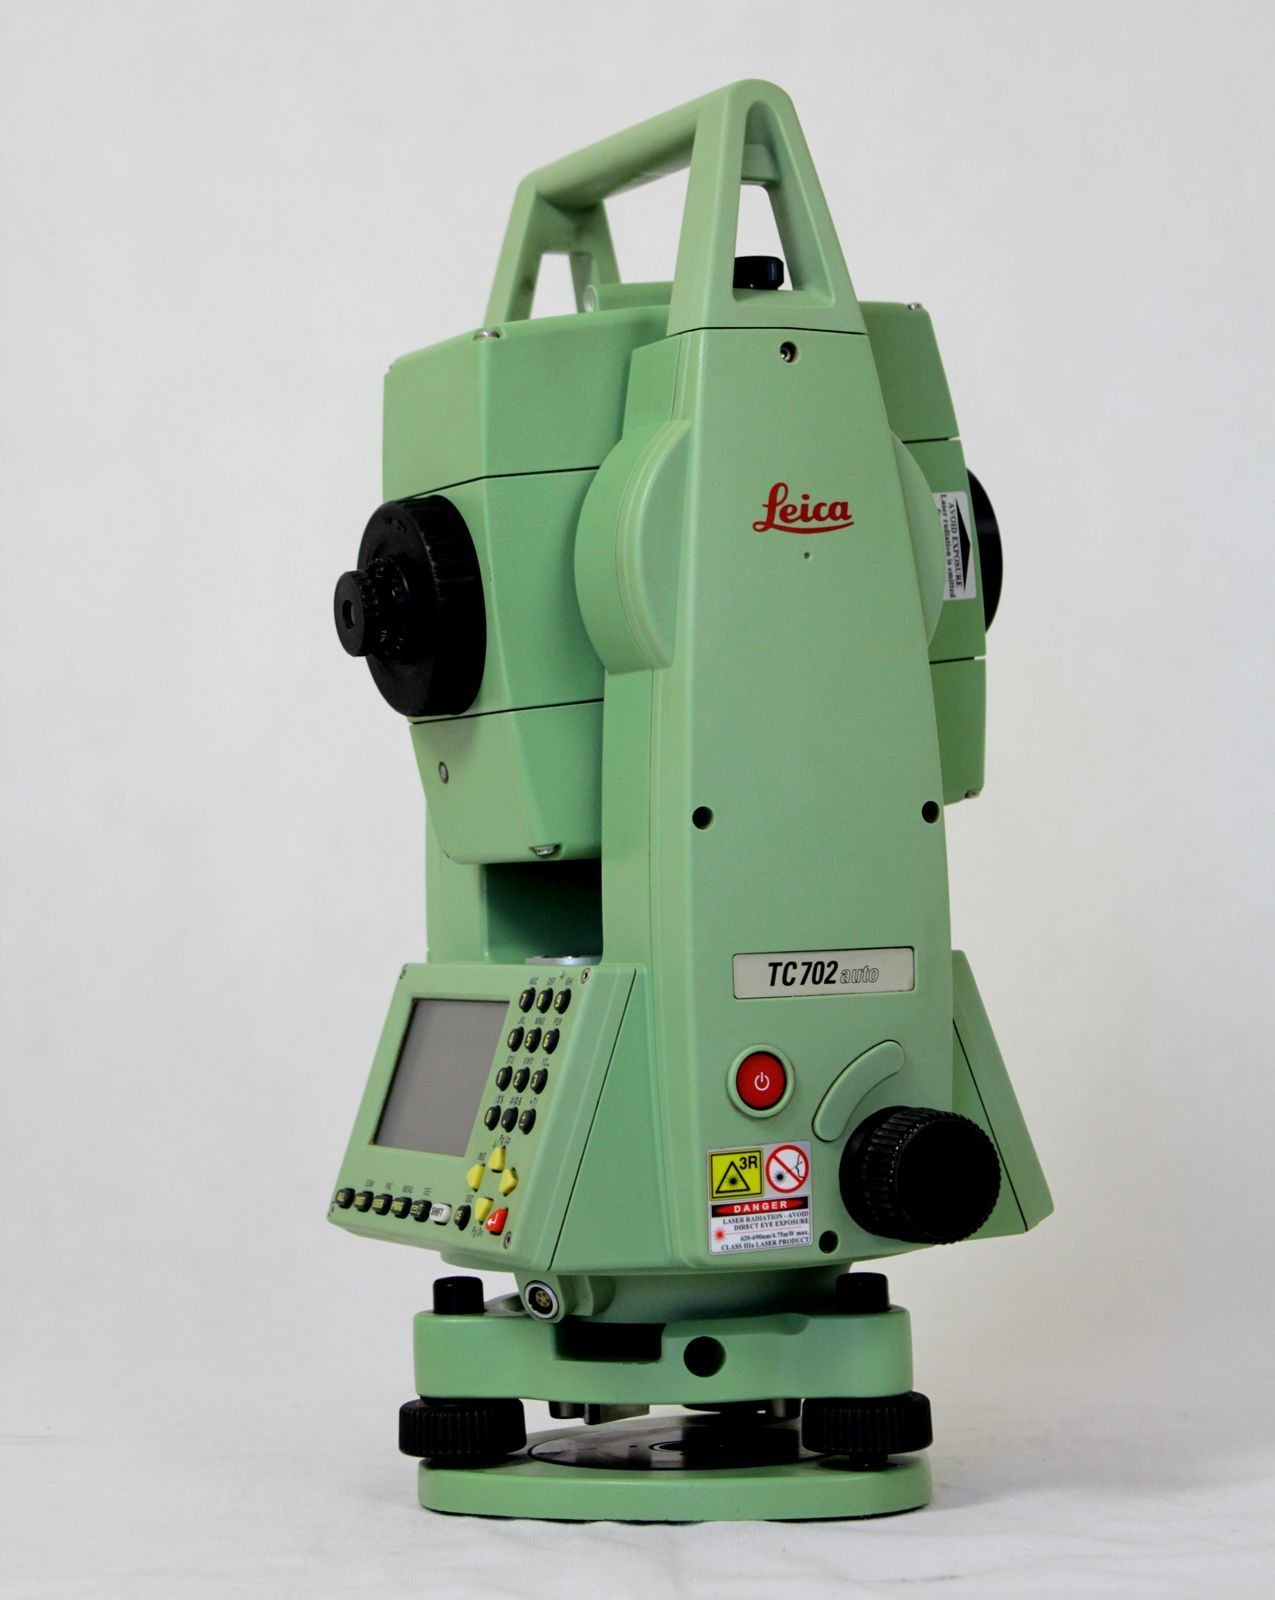 Leica Tcr702auto 2 U2033 Motorized Reflectorless Total Station